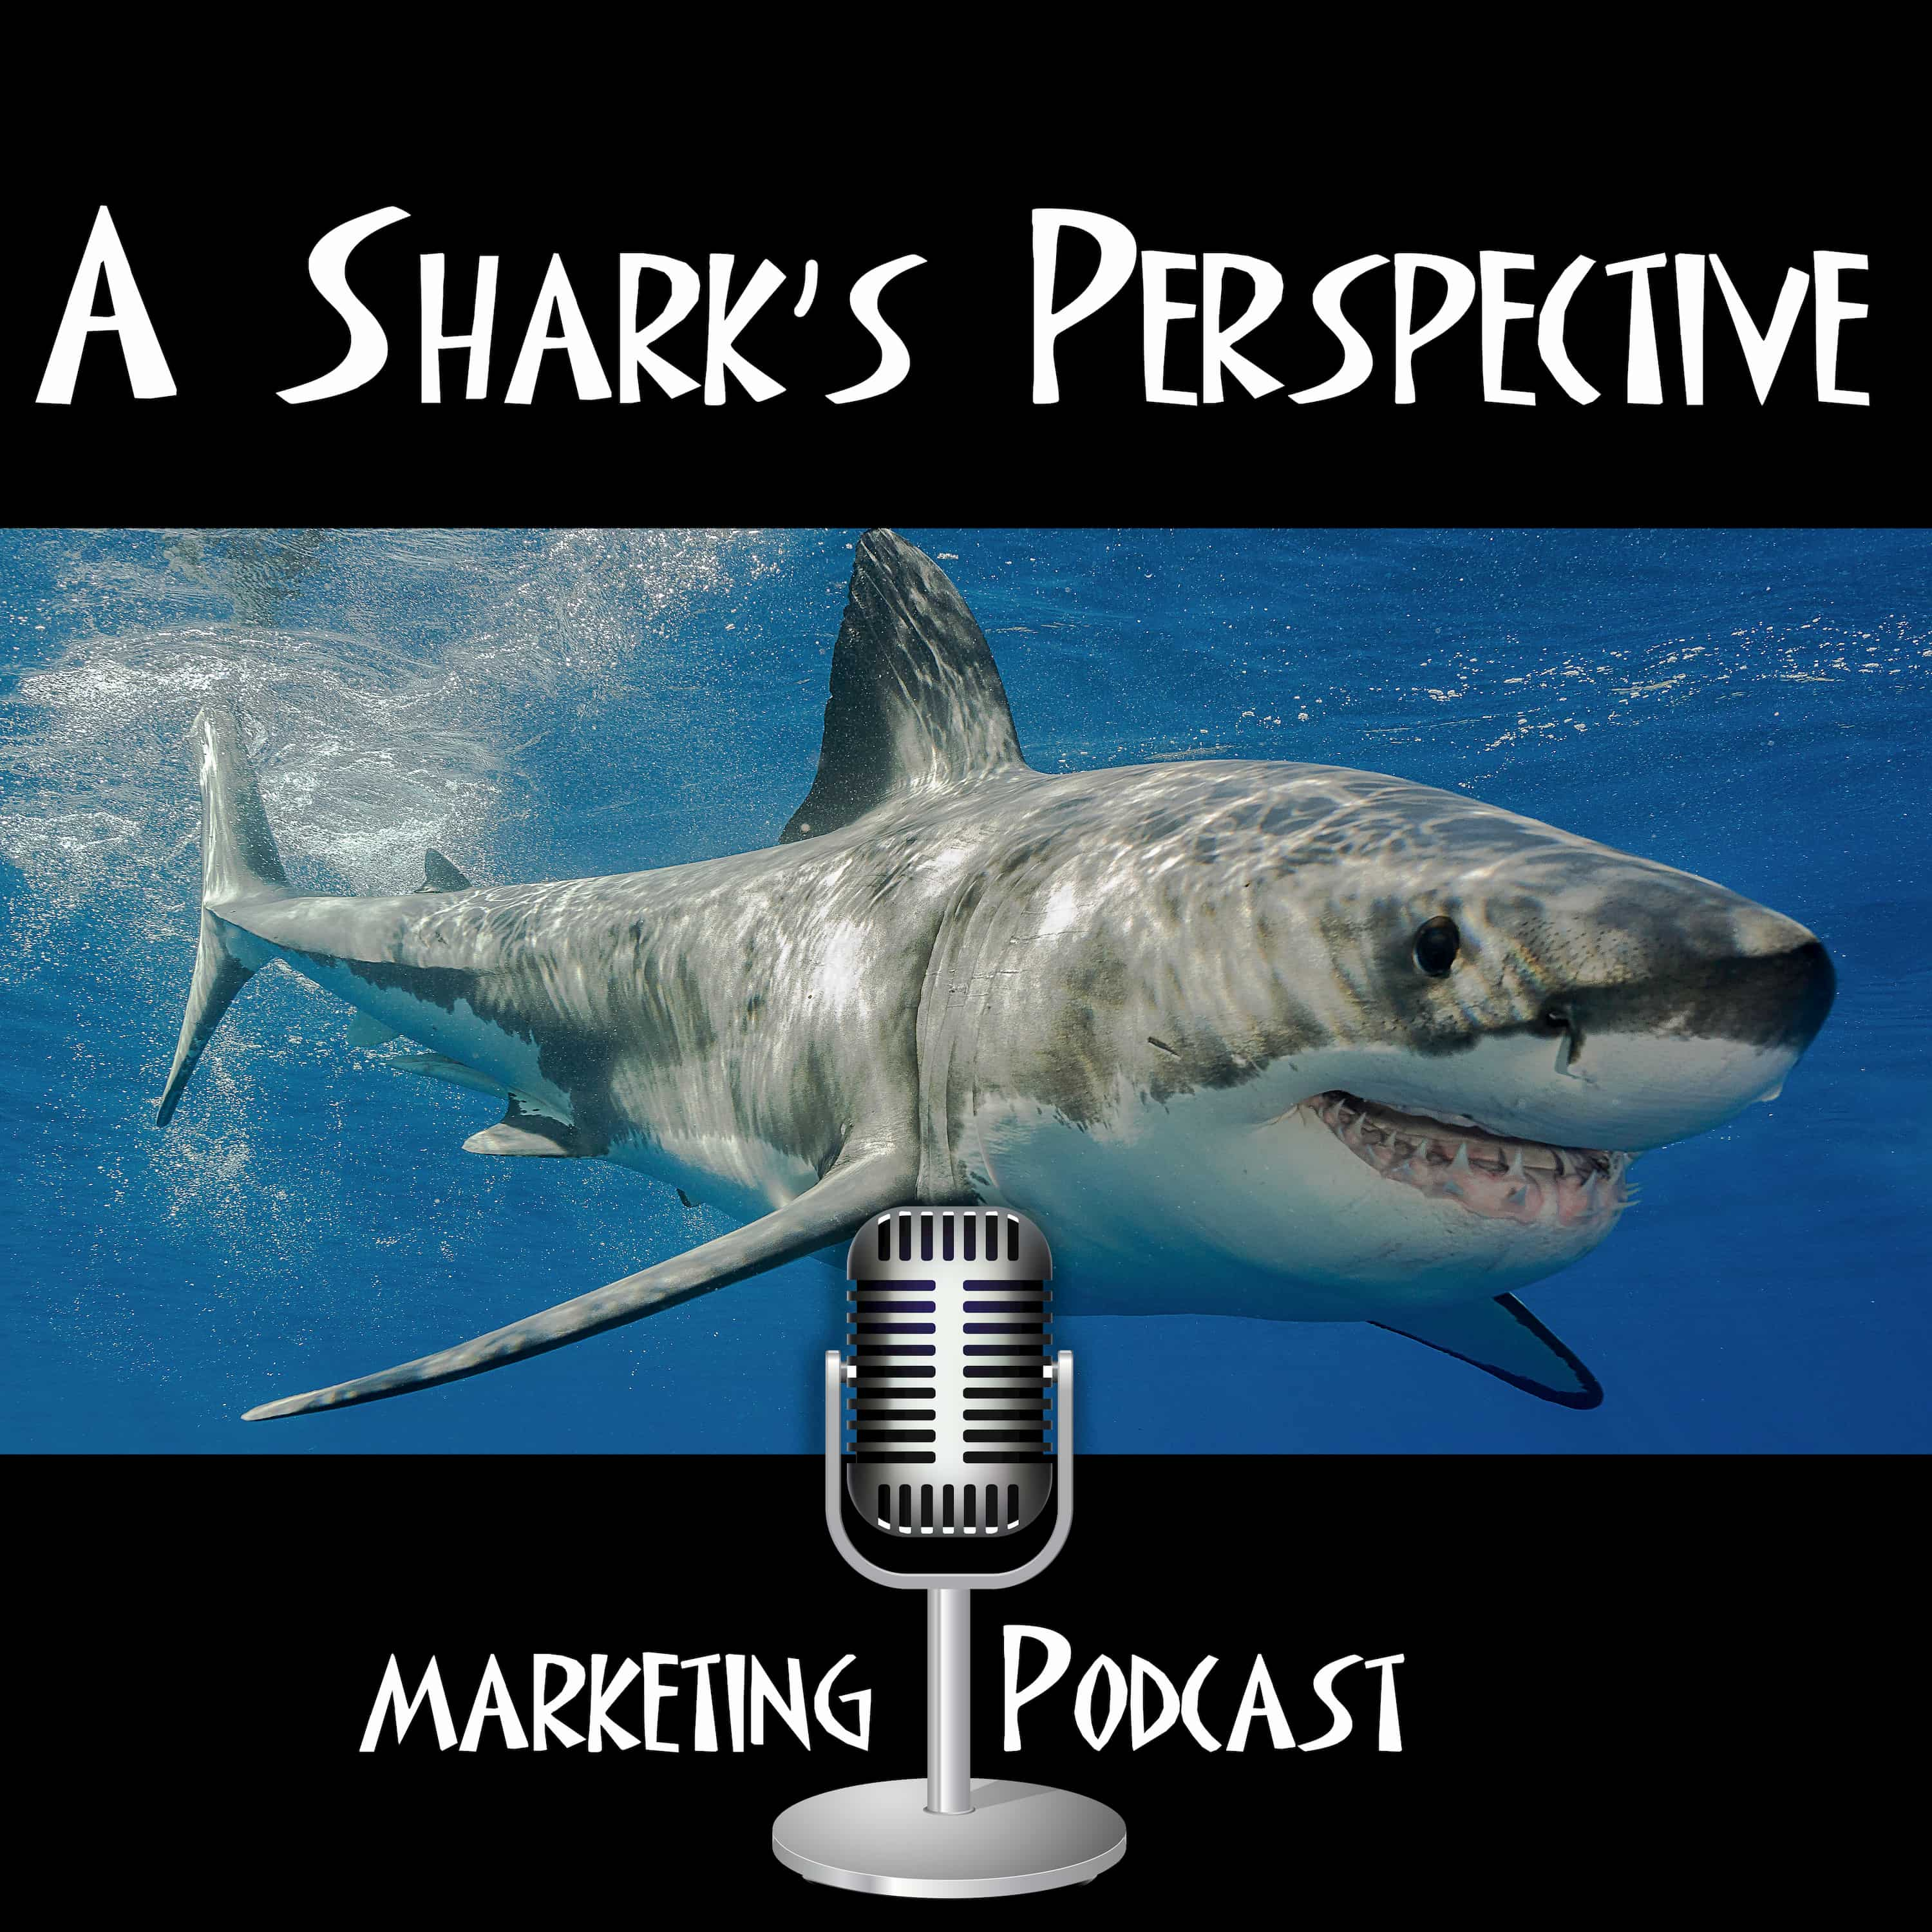 A Shark's Perspective podcast show image